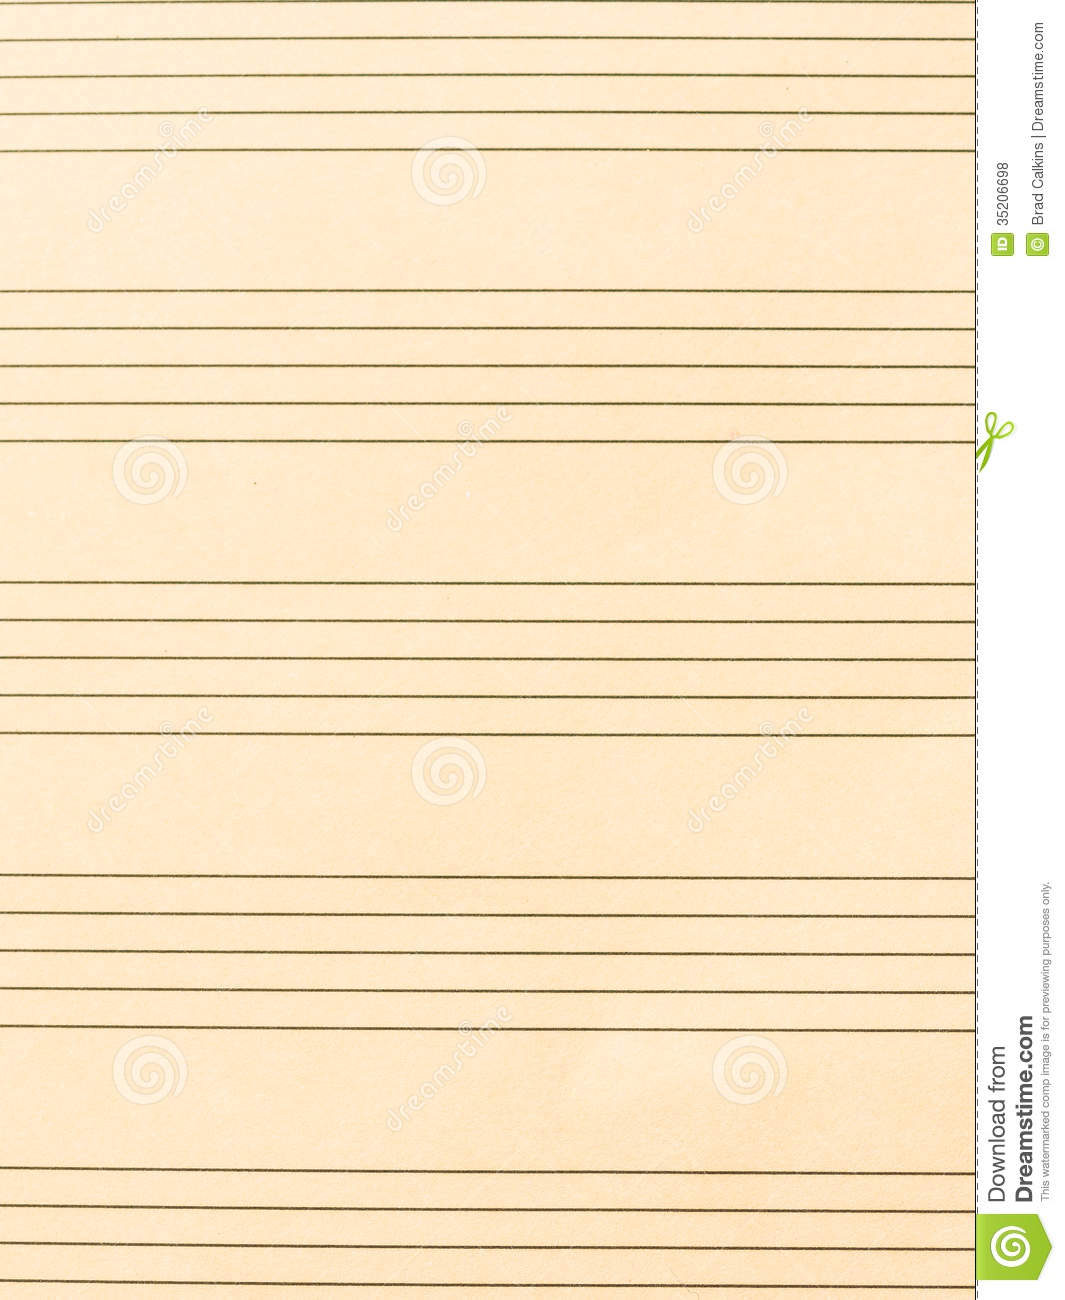 sheet of music stock photo  image of music  clef  lined